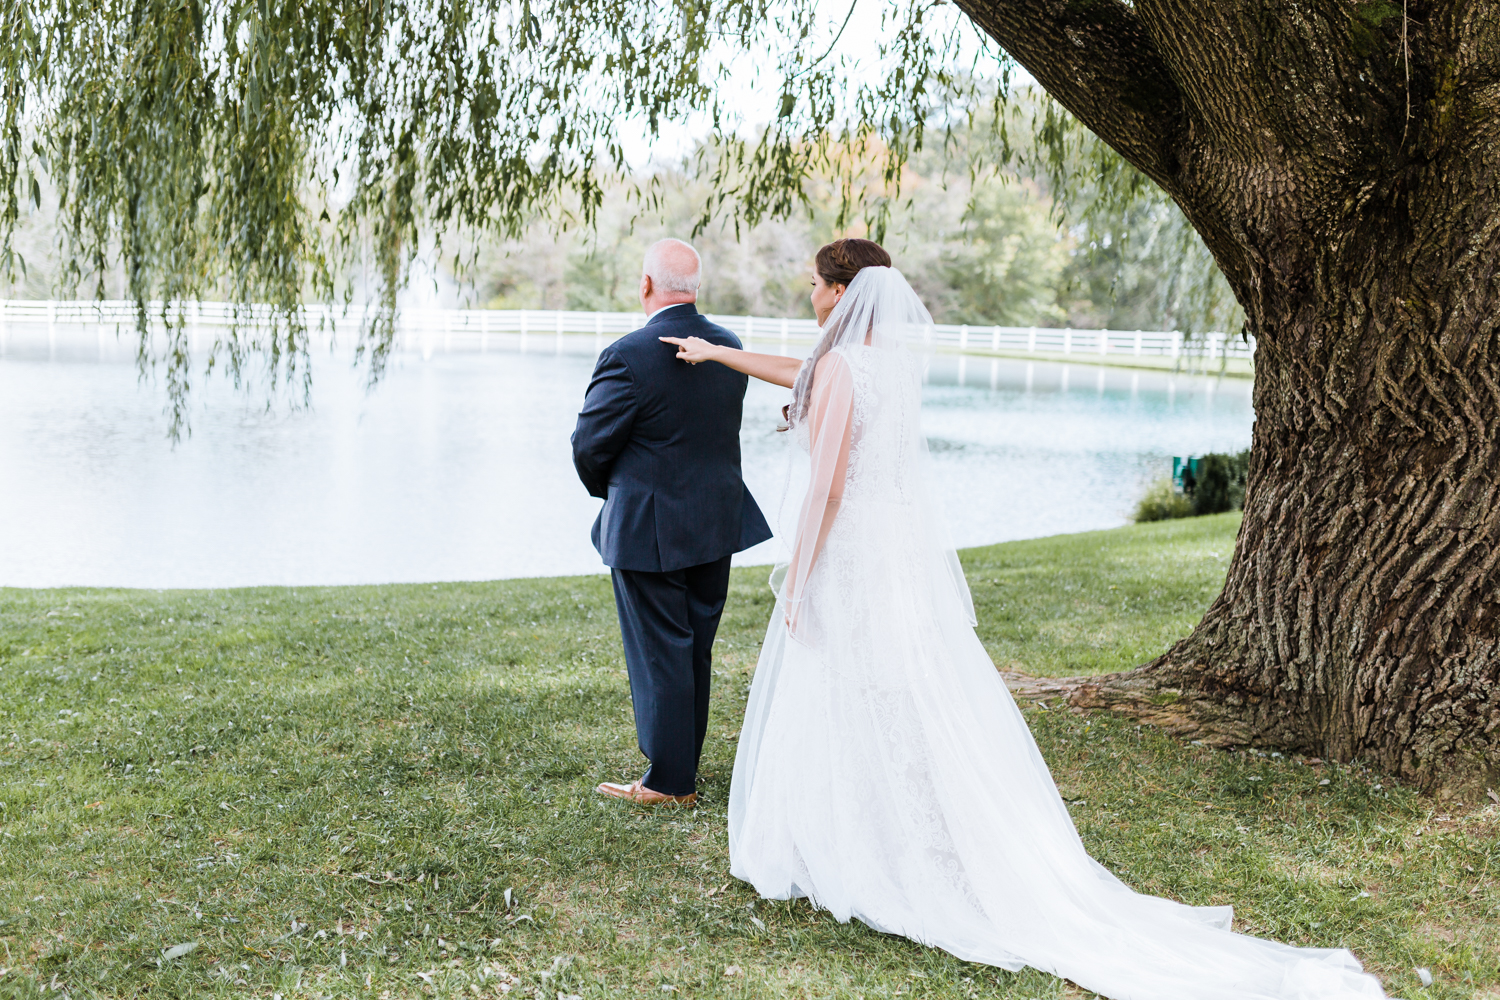 first look between bride and her father - Maryland rustic wedding venues with water